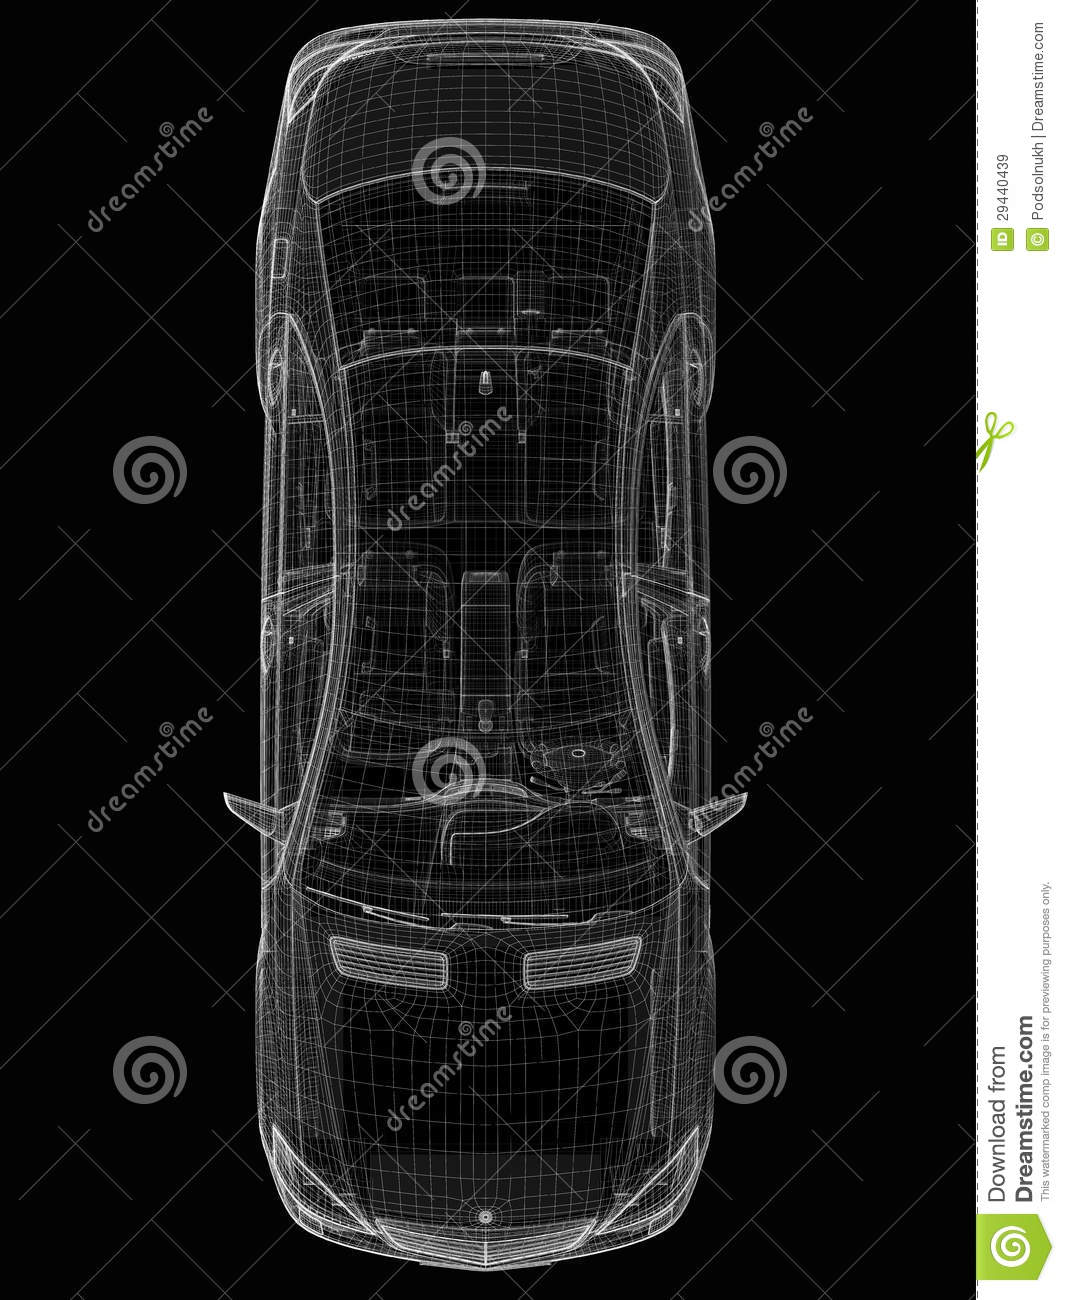 Car 3D Model, Top View Stock Illustration. Image Of Model